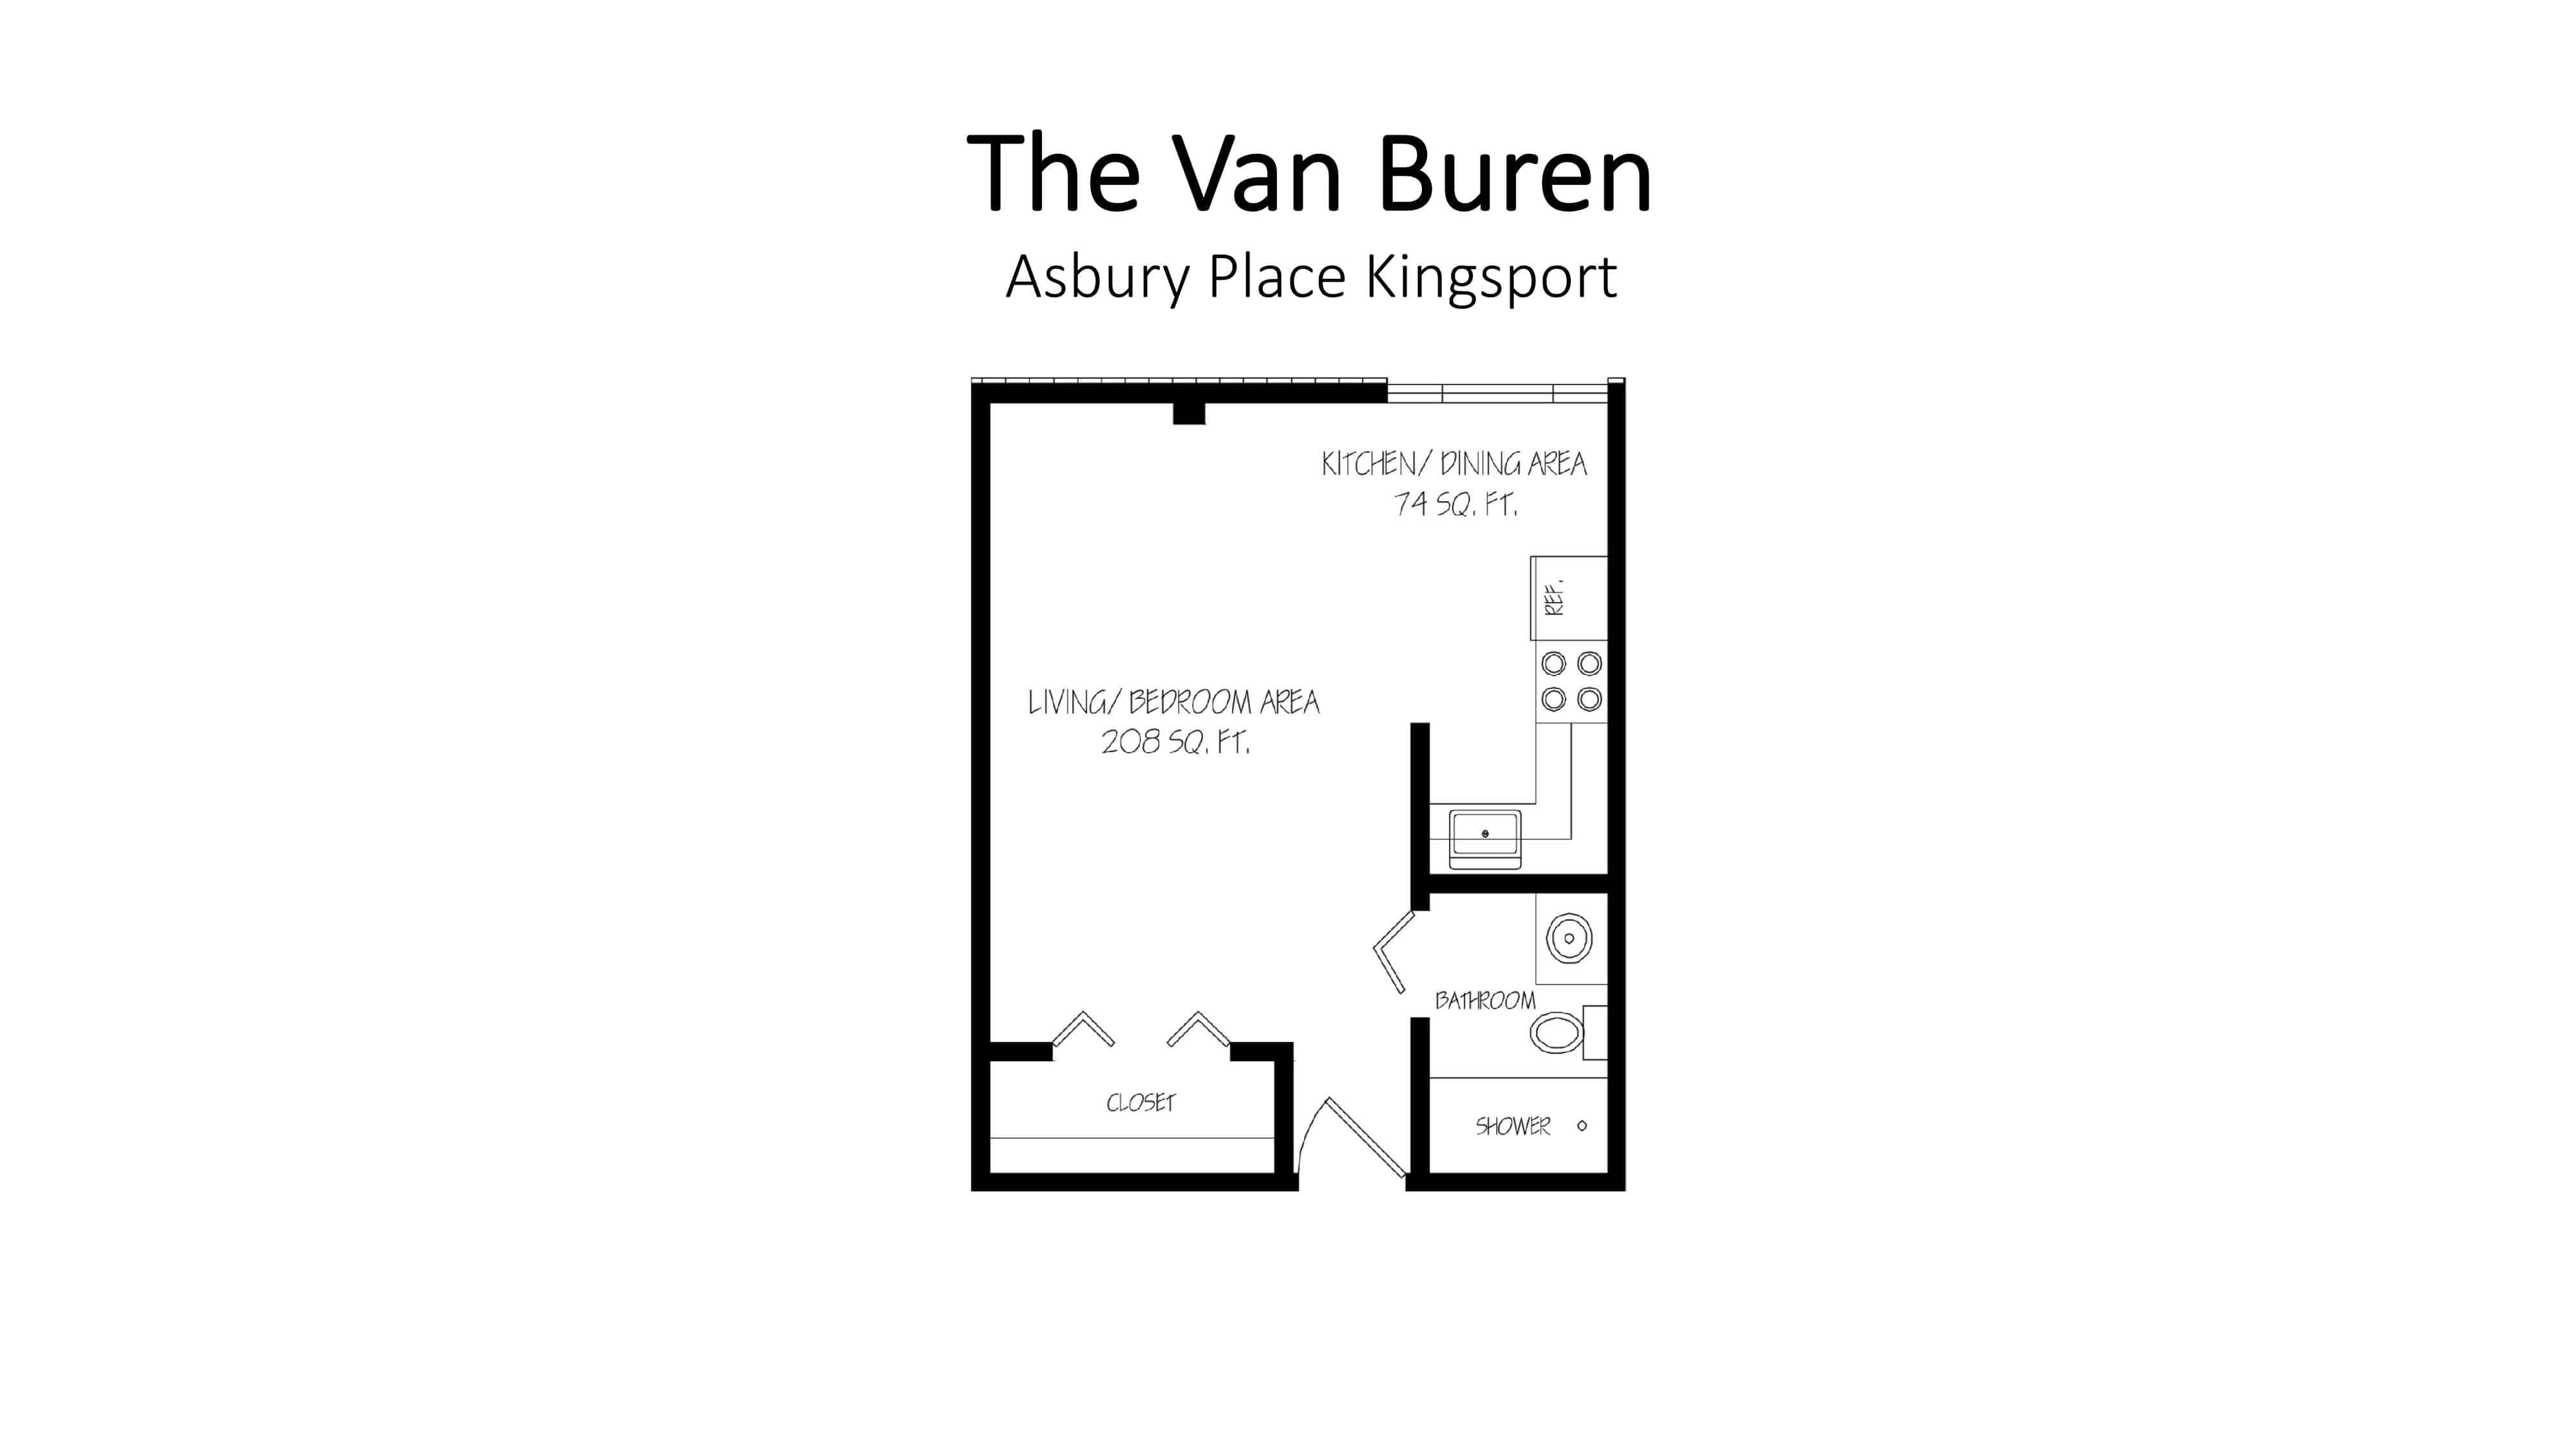 Asbury Place Kingsport The Van Buren Floorplan